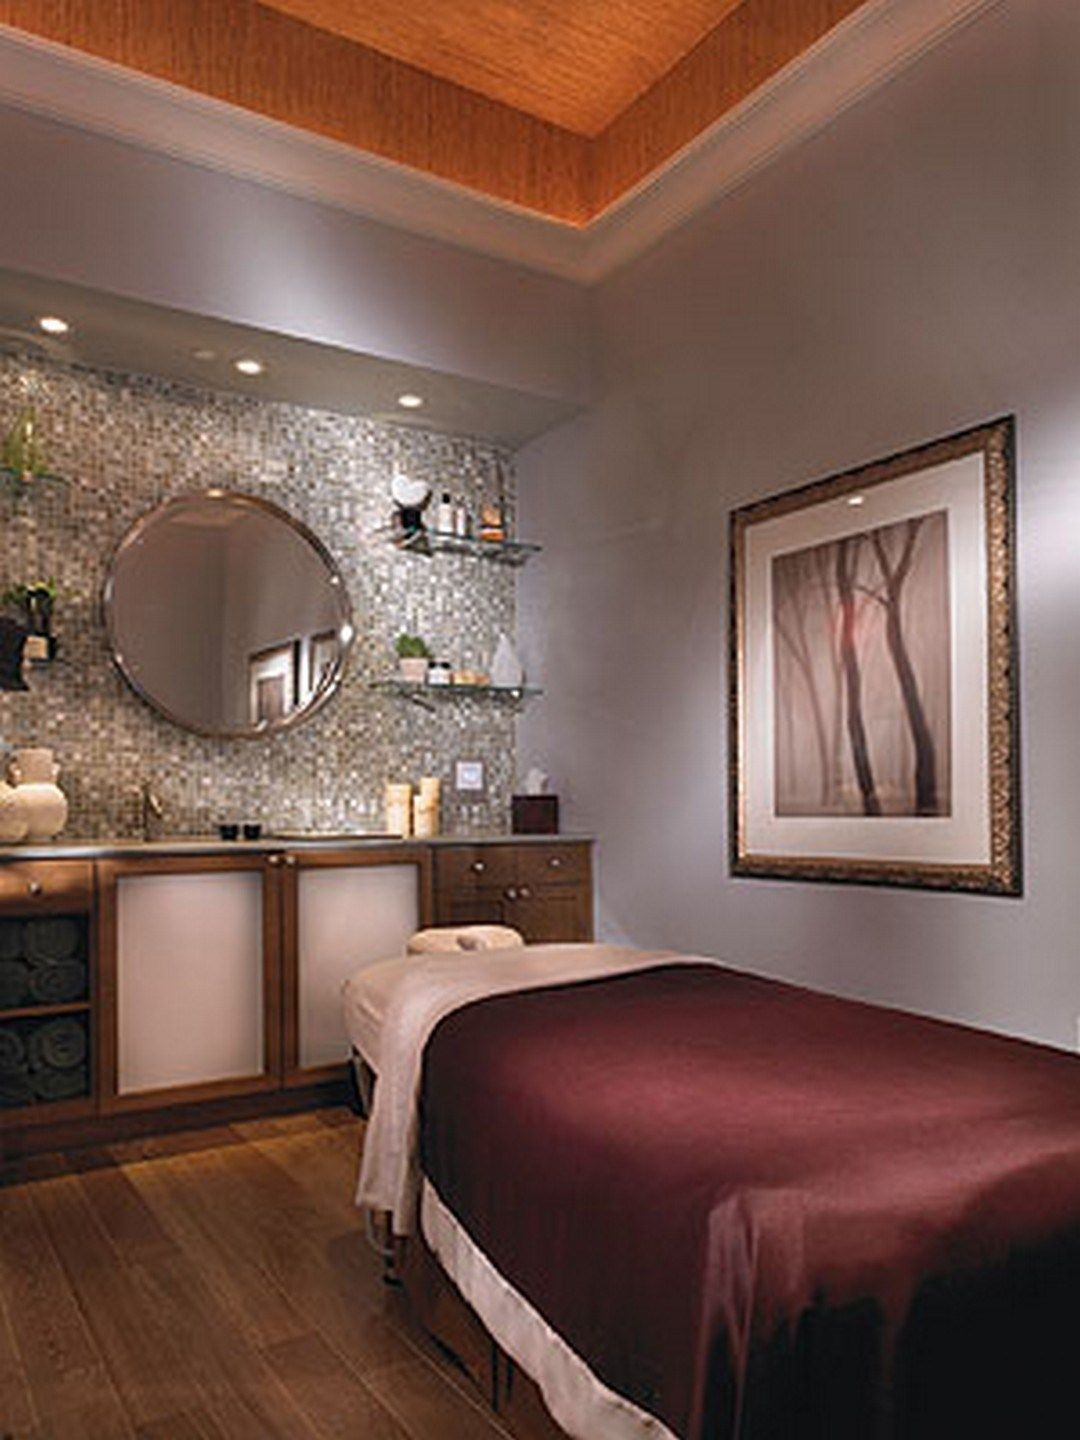 Massage Therapy Room Design Ideas: Execellent Indoor Spa Decorating Ideas (26